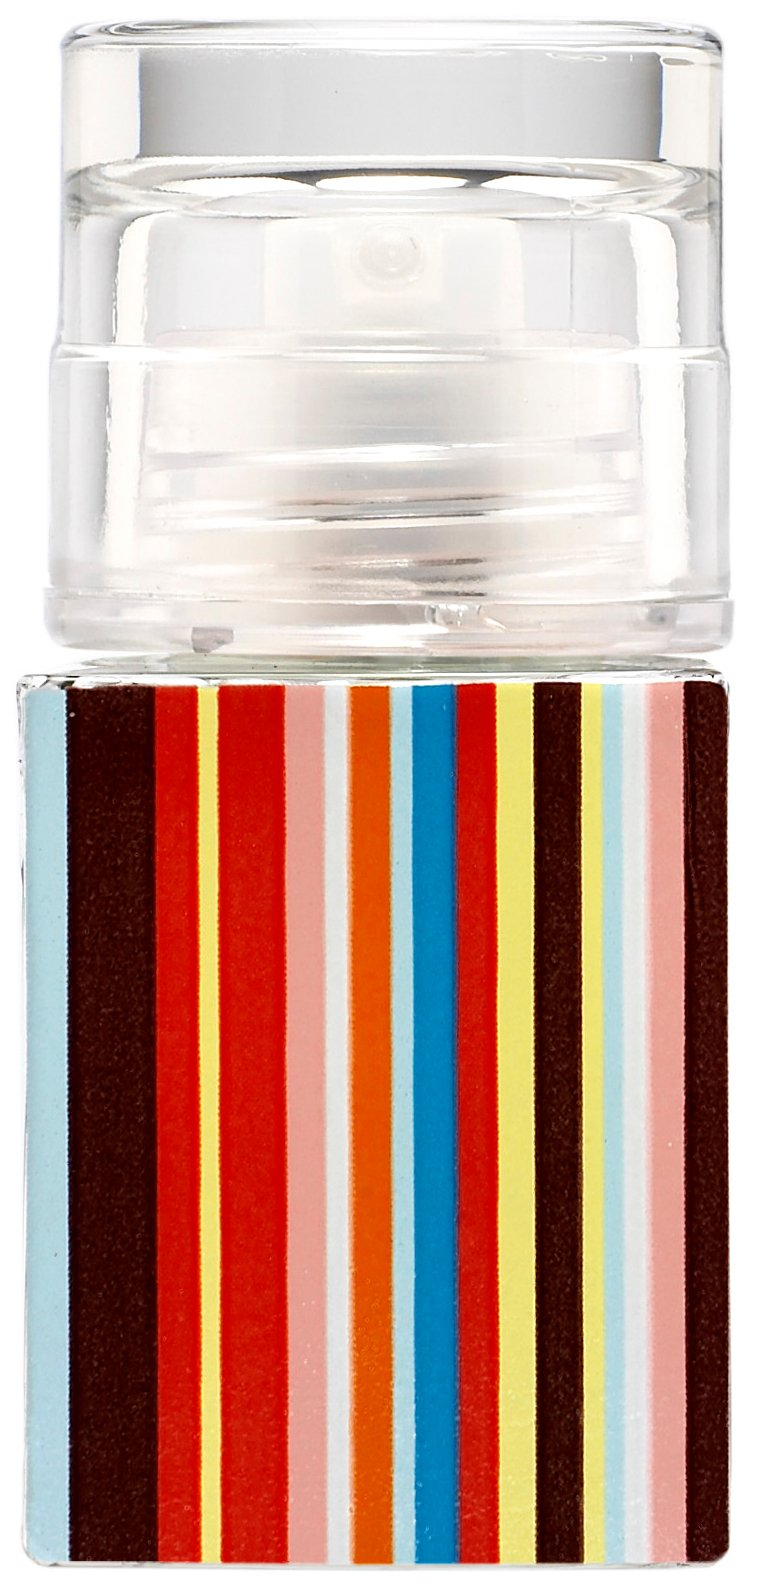 Paul Smith - Extreme for Men 30 ml. EDT